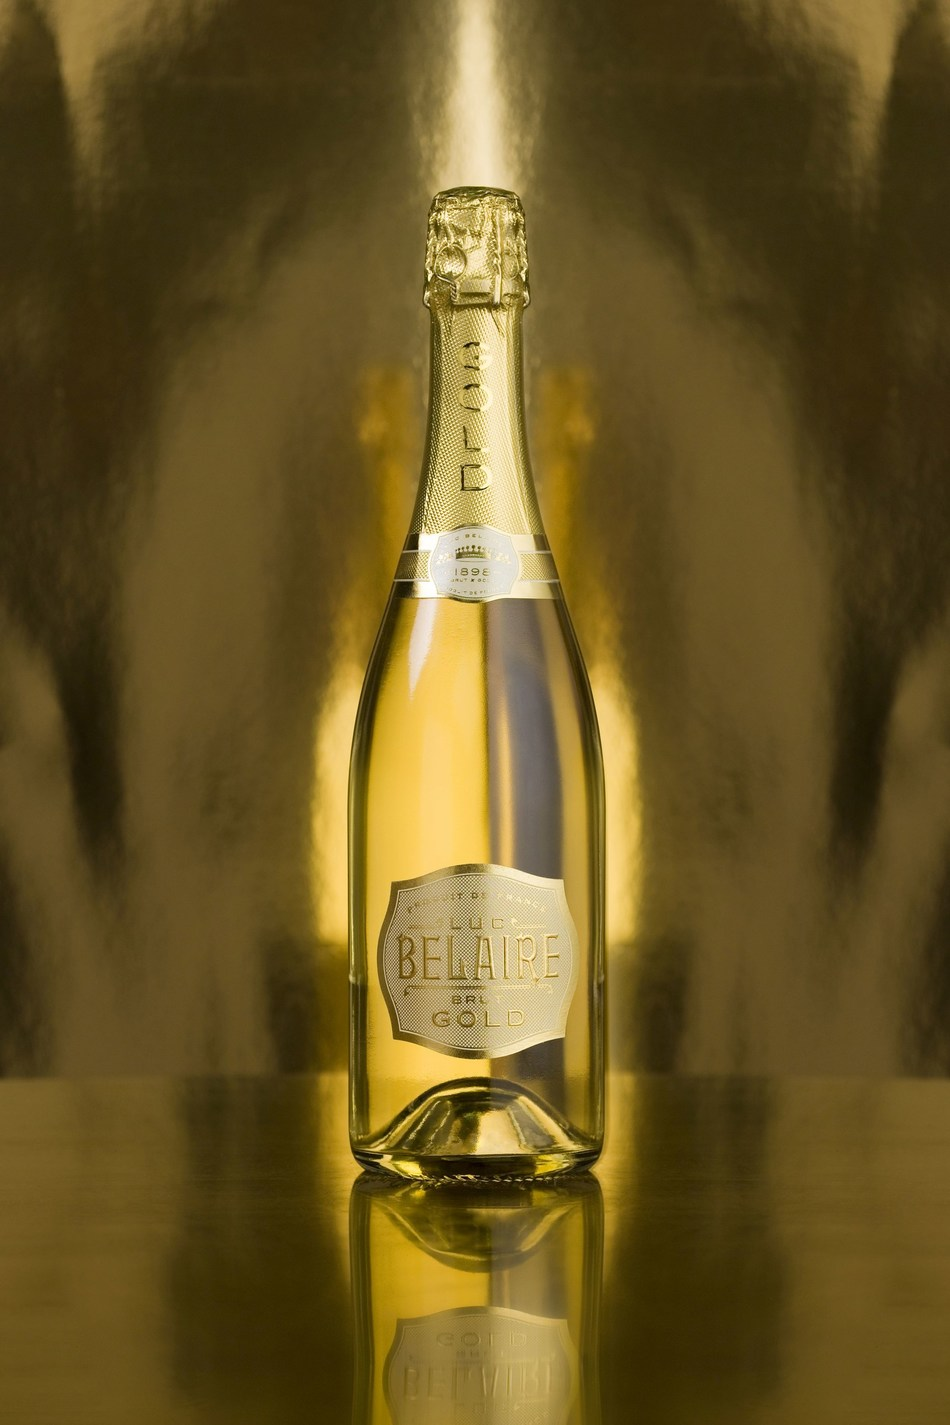 Luc Belaire Gold is a captivating new creation crafted in Burgundy, France from handpicked Chardonnay and Pinot Noir grapes. It joins our exquisite Belaire Rosé and Belaire Luxe as the most exciting brands in the wine world. Like the rest of our award-winning range, Belaire Gold is made at our maison in Montagny-les Beaune, established in 1898 in one of the world's most historic winemaking regions. The Luc Belaire range is sold in more than 100 countries worldwide. (PRNewsfoto/Luc Belaire)